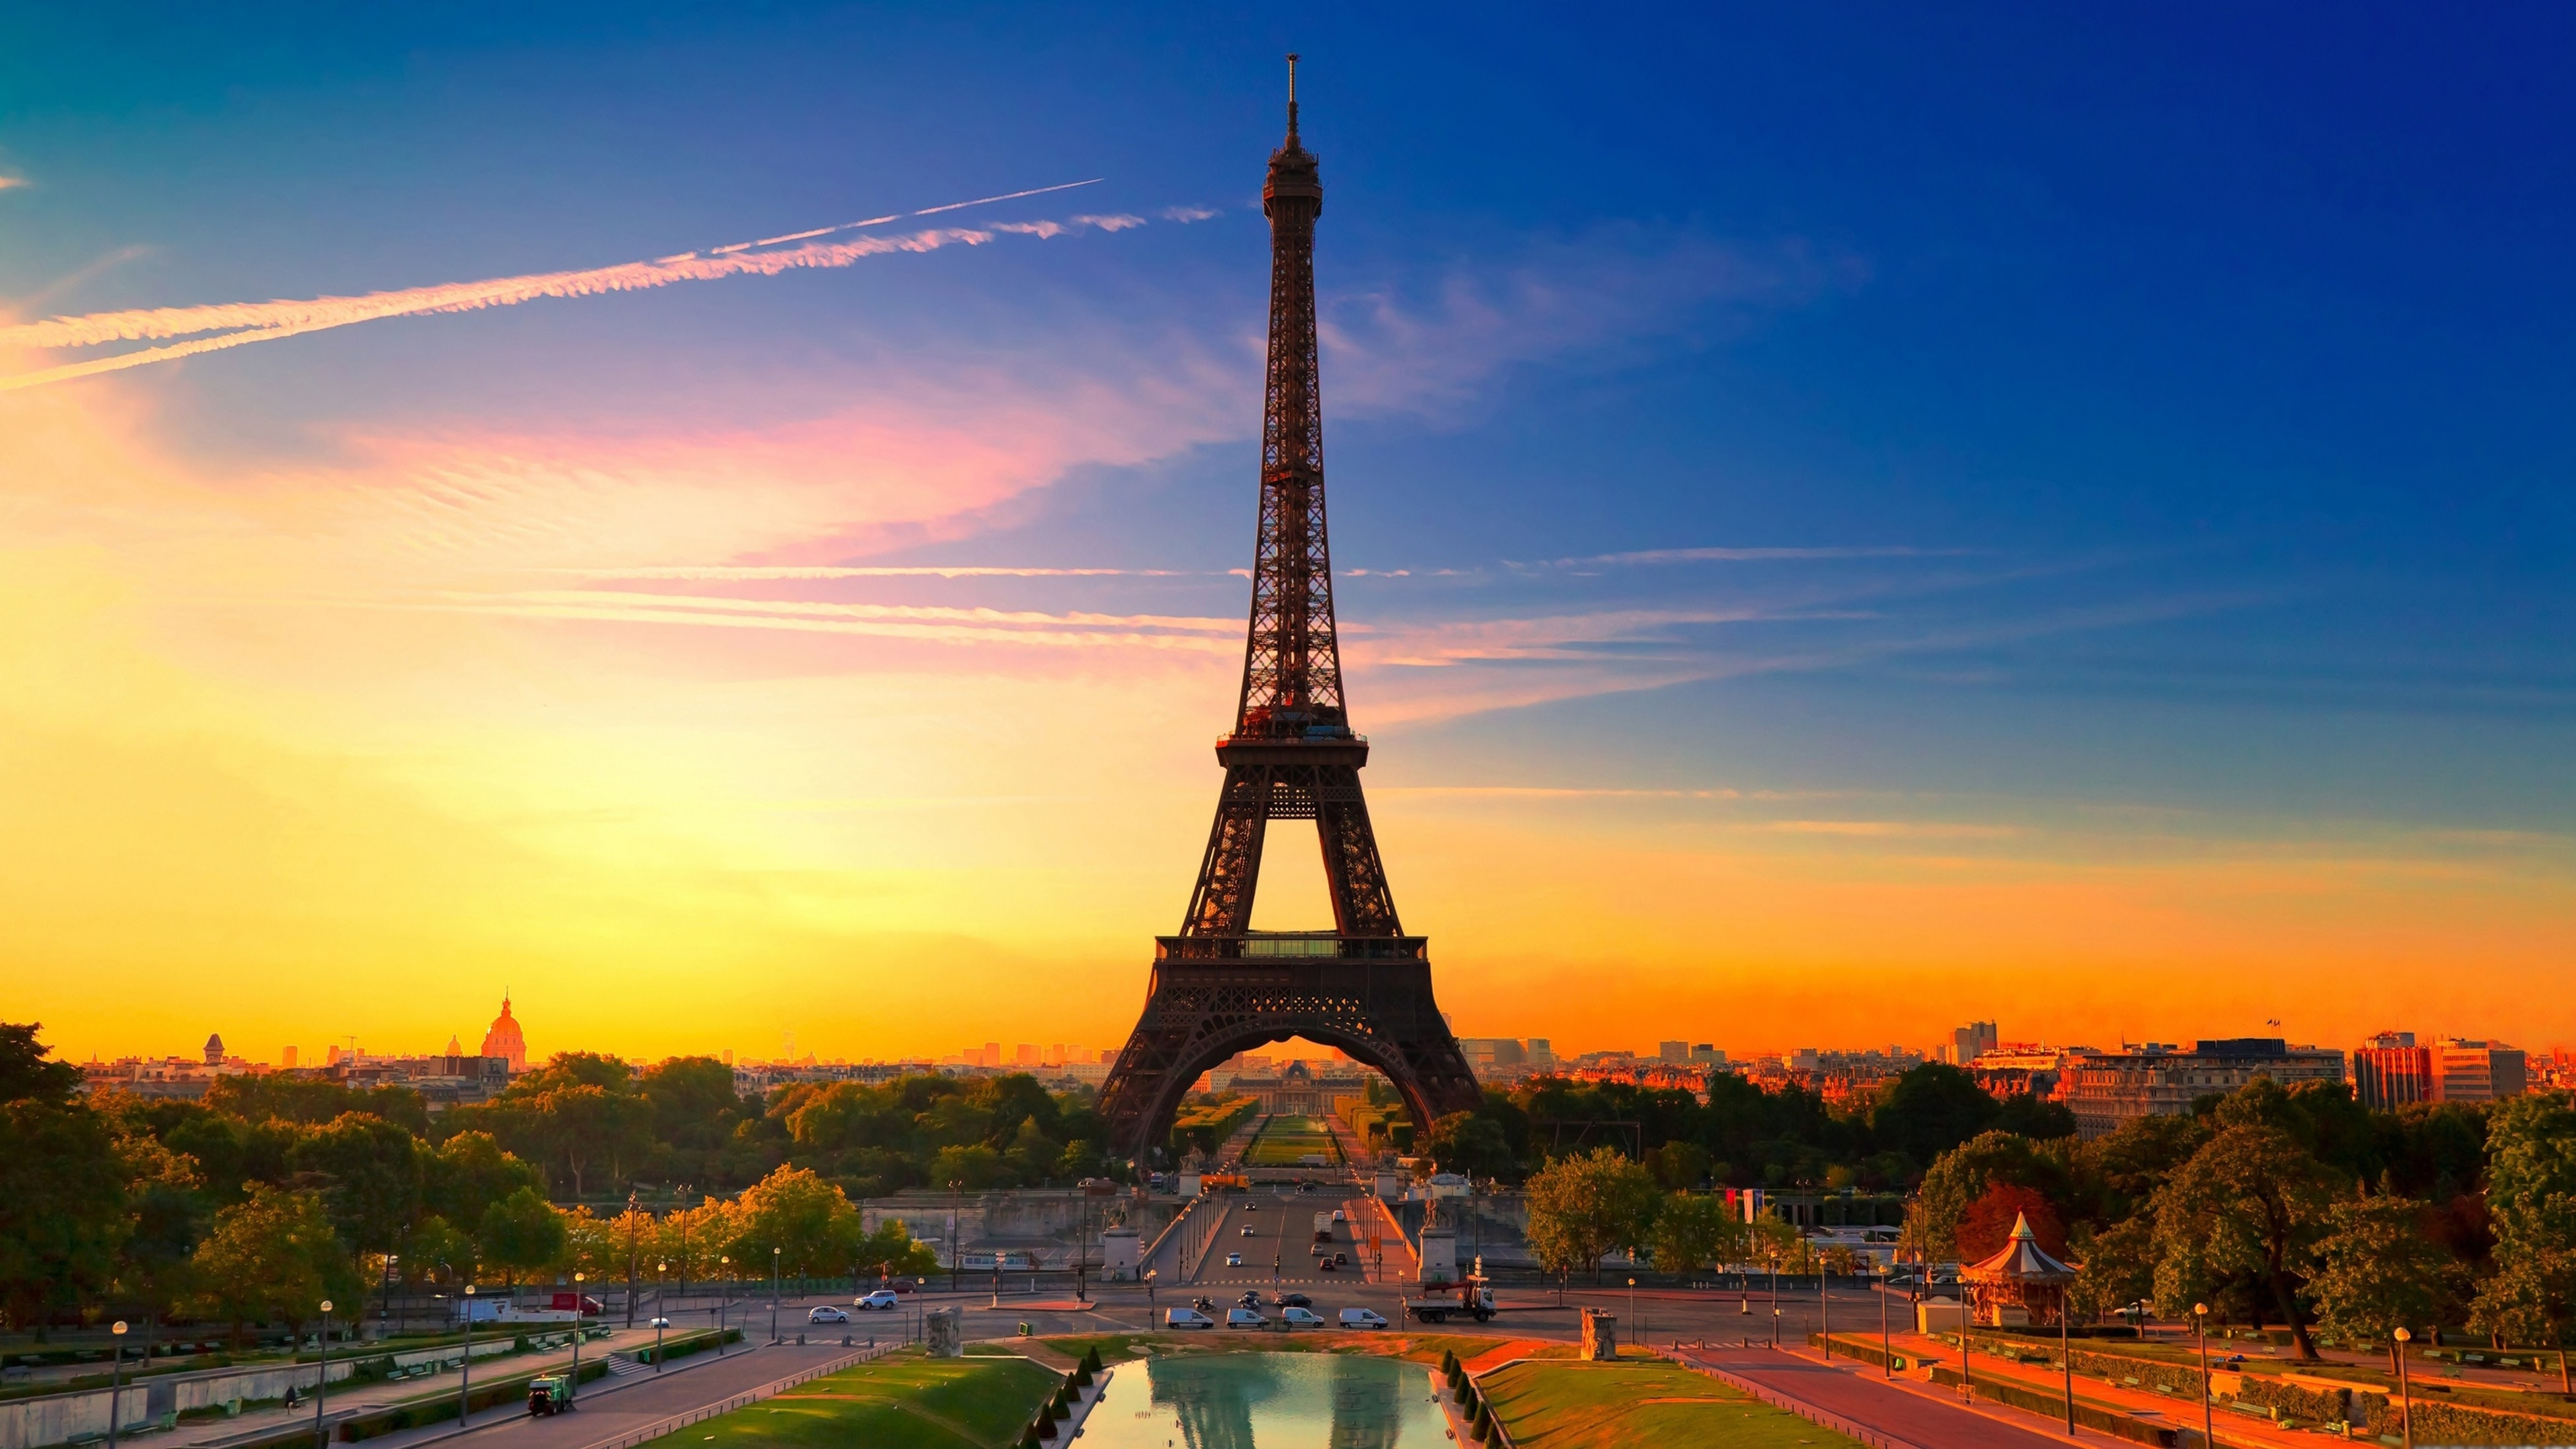 248 eiffel tower hd wallpapers | background images - wallpaper abyss